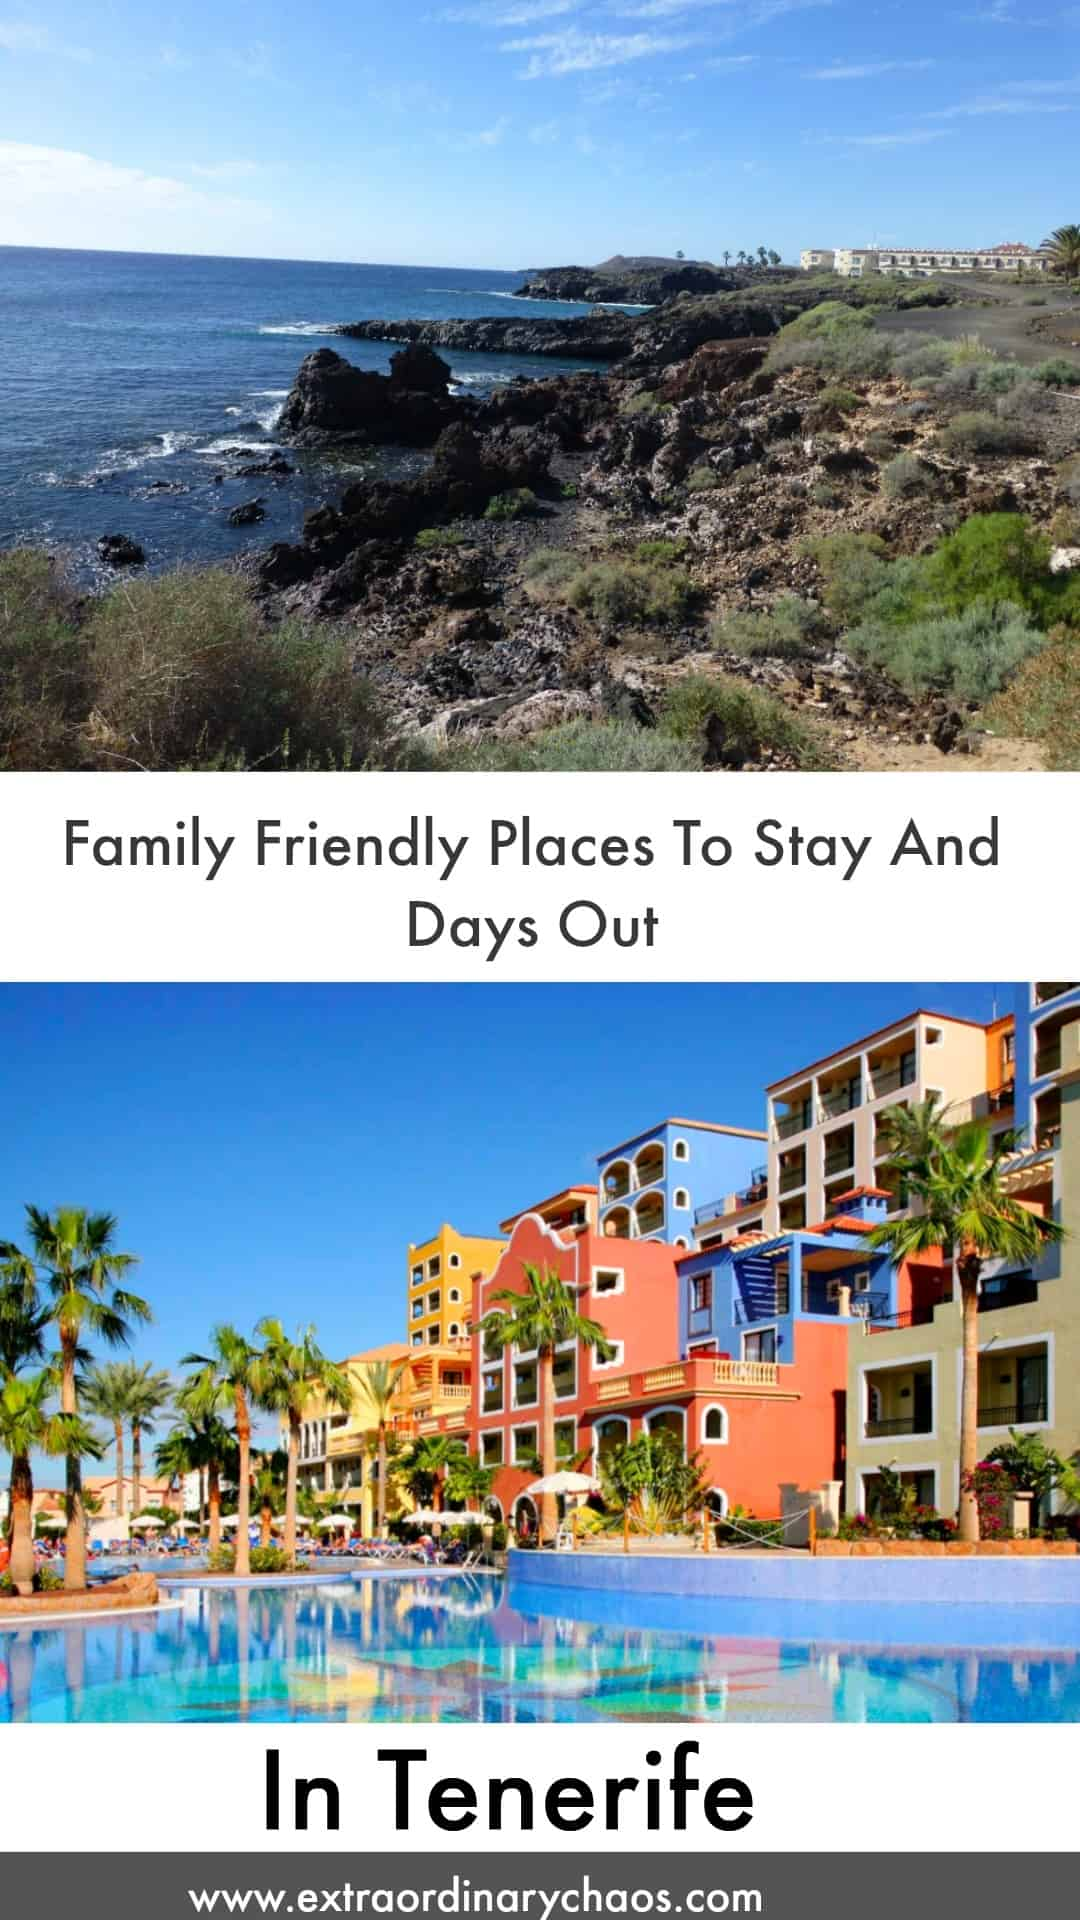 Visiting Tenerife in Spain, check out my guide of family friendly places to visit and stay in Tenerife.